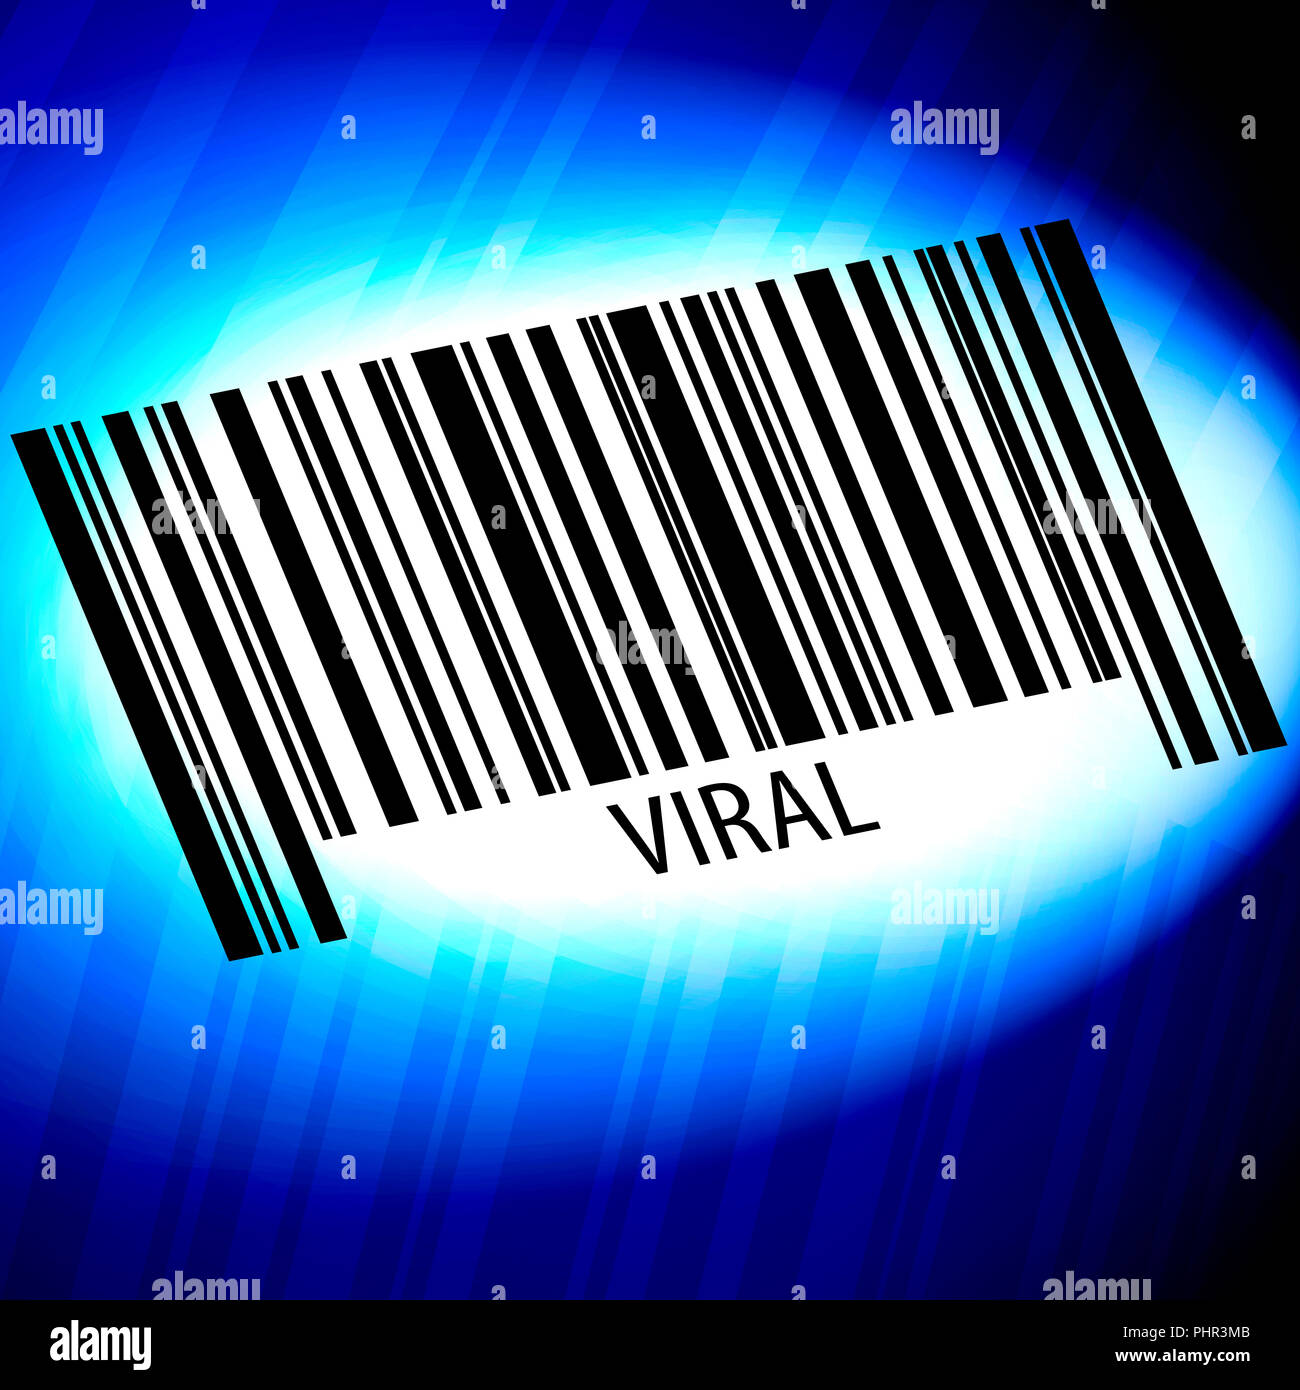 Viral - barcode with blue Background - Stock Image